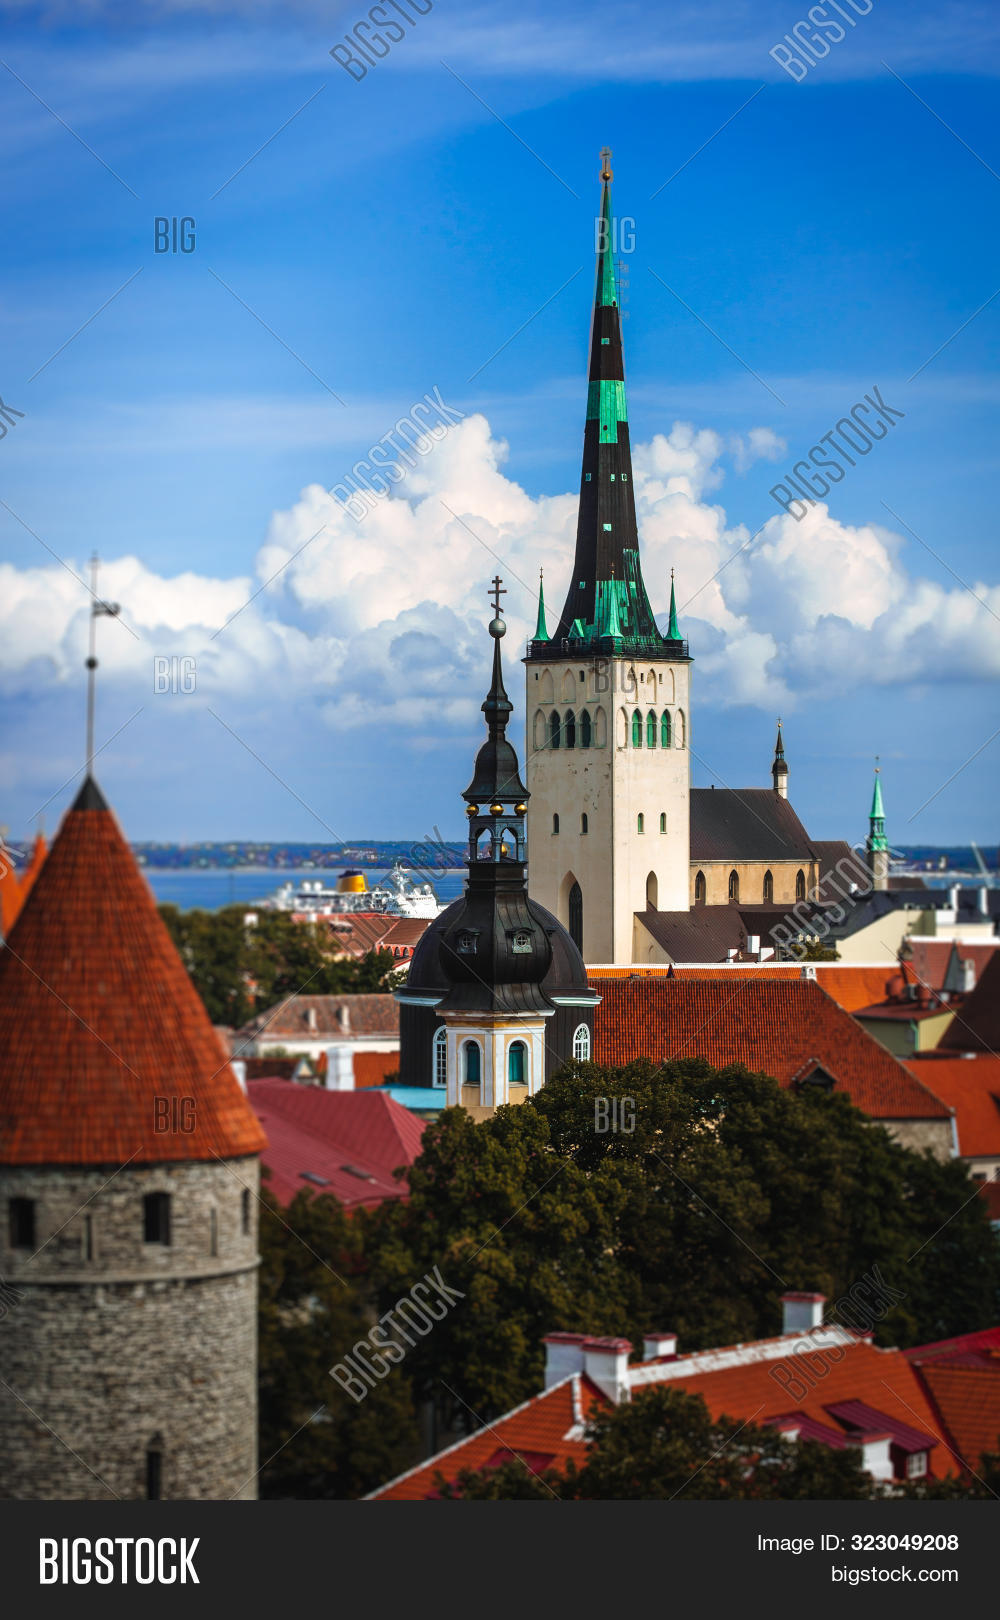 Scenic summer aerial panorama of the Old Town architecture in Tallinn, Estonia, Cloudy blue sky